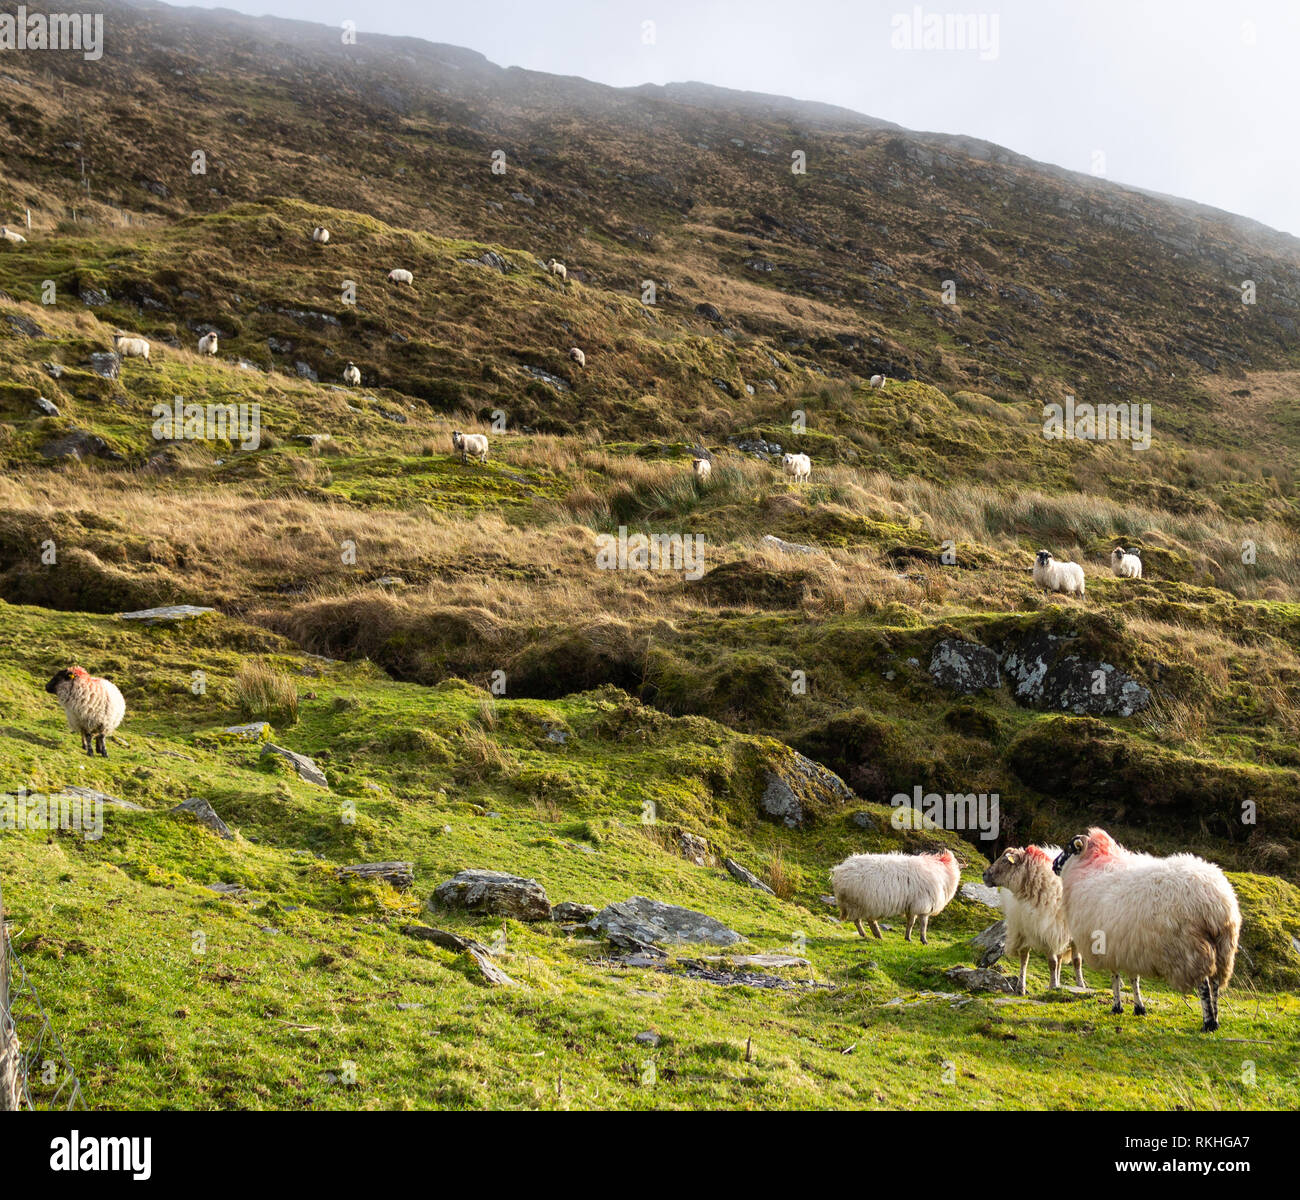 Mixed breed ewes or sheep on a mountain side in Ireland. - Stock Image